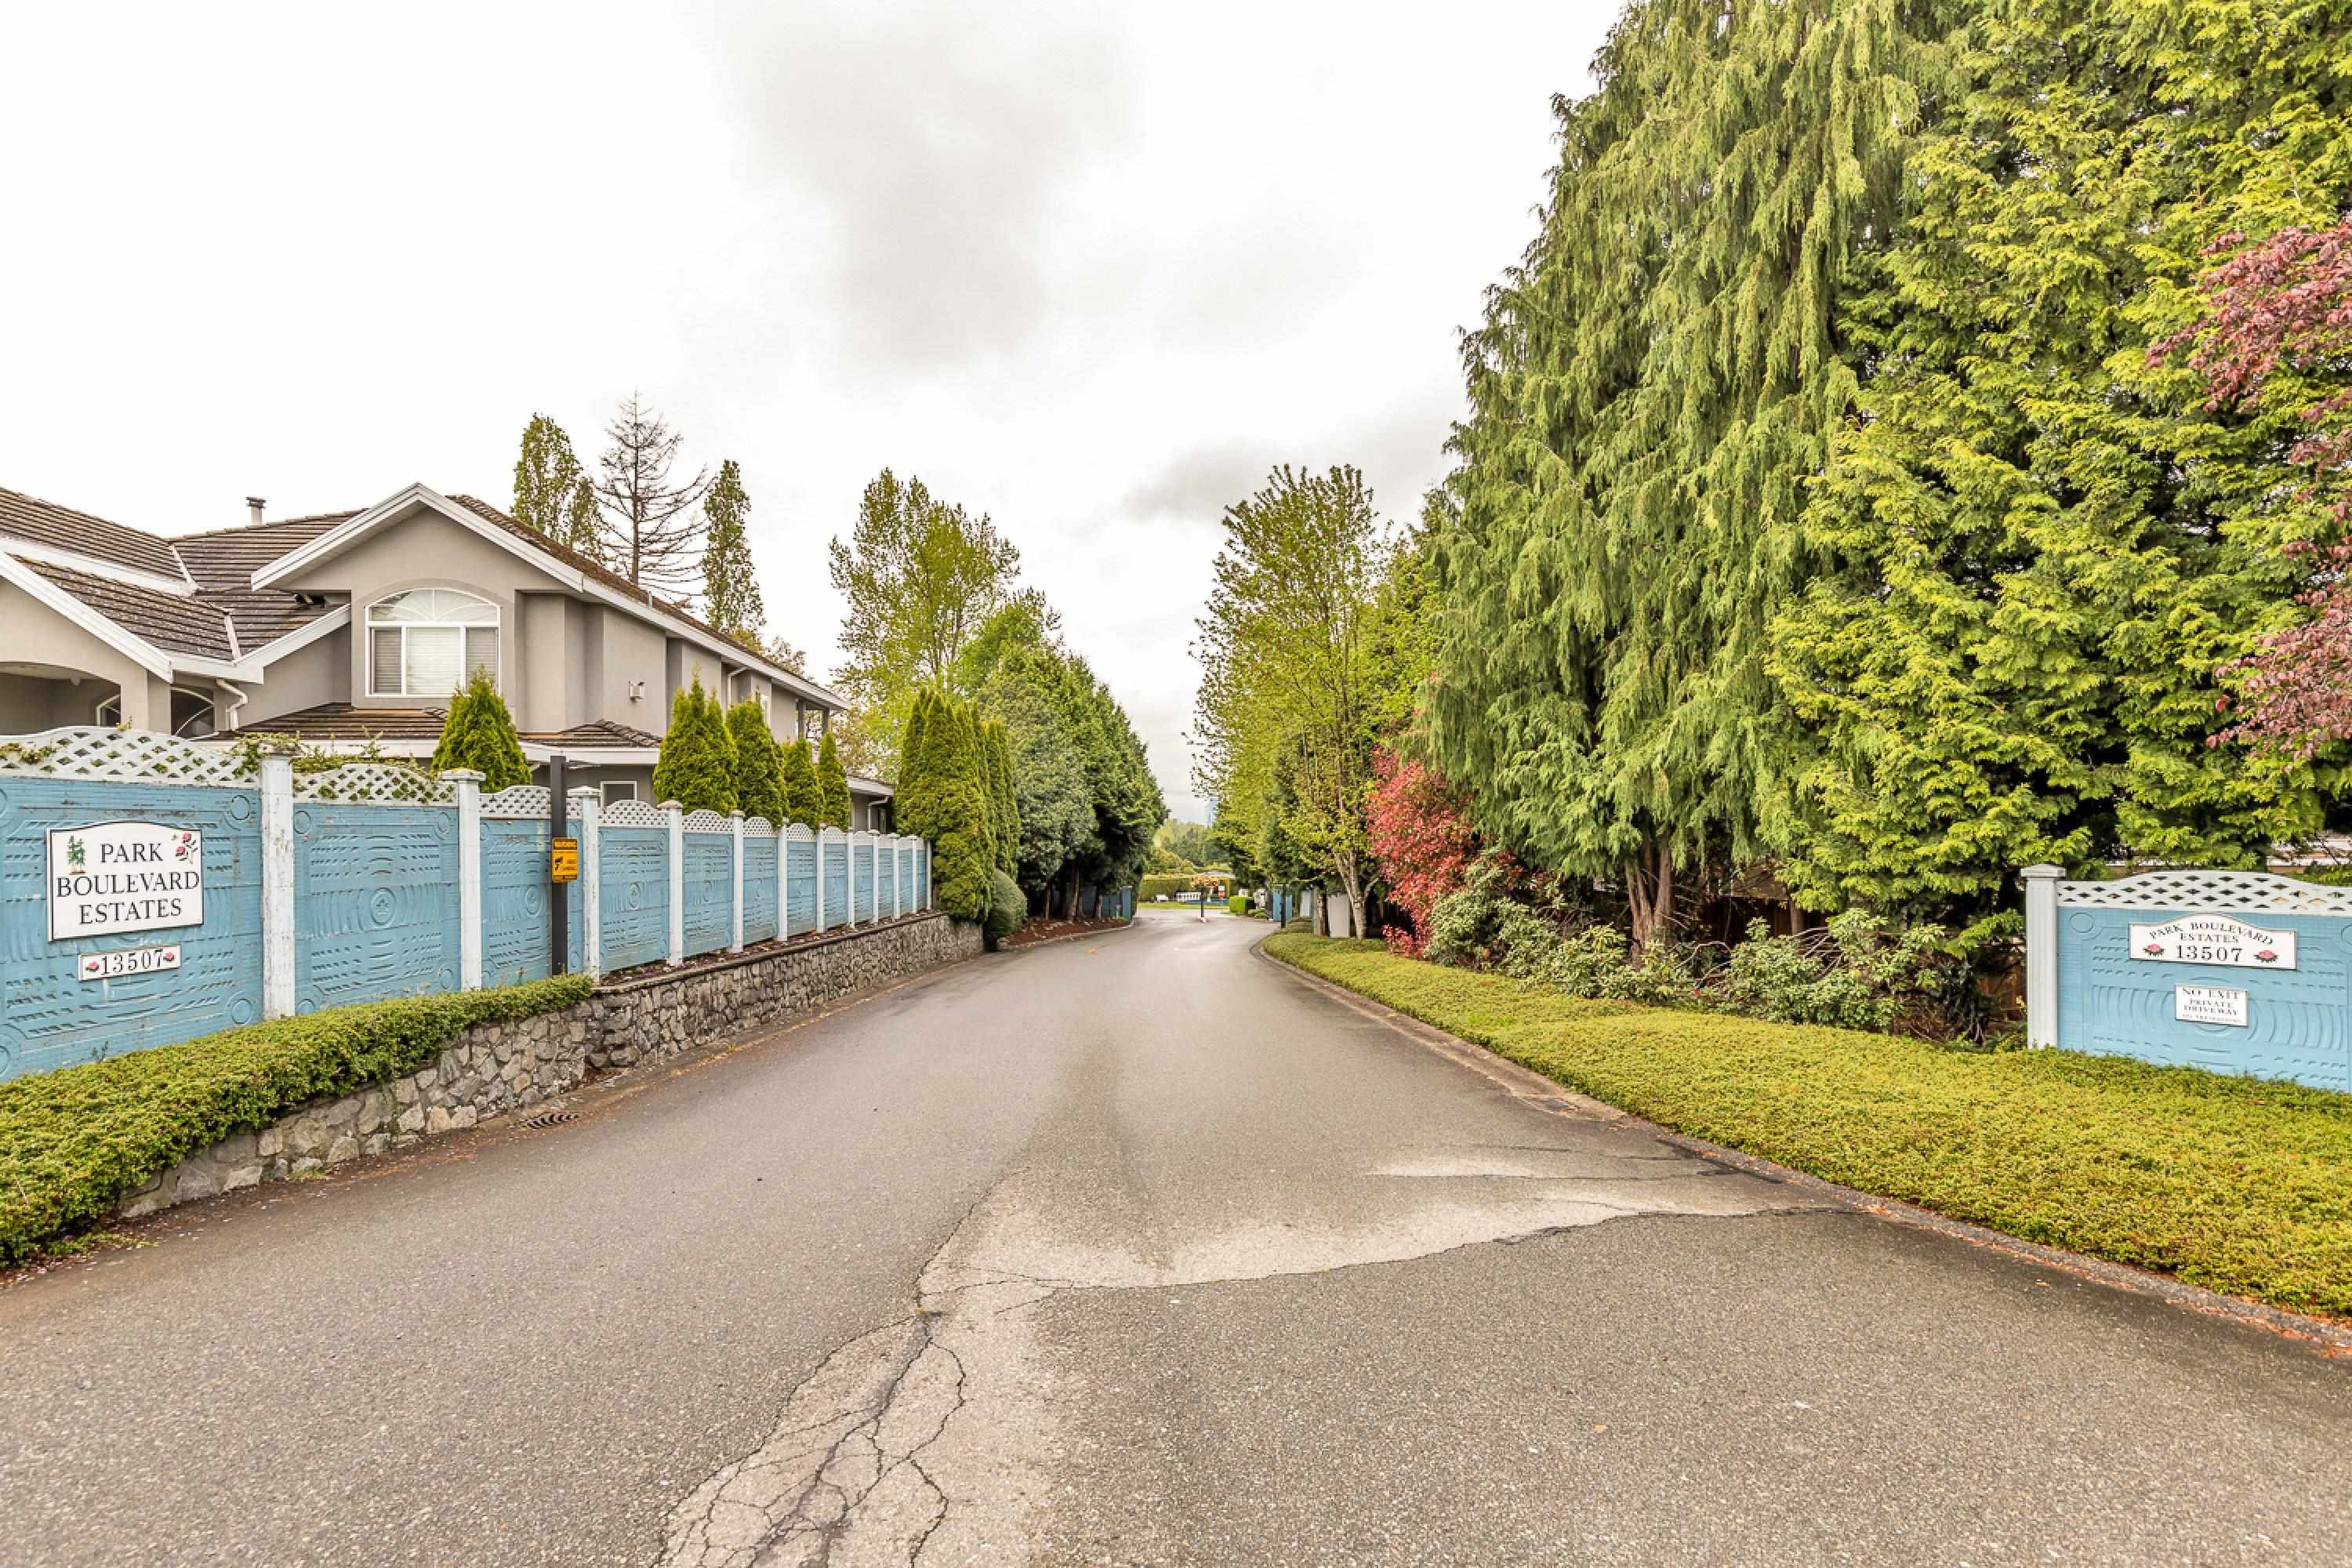 44 13507 81 AVENUE - Queen Mary Park Surrey Manufactured with Land for sale, 2 Bedrooms (R2624906) - #39